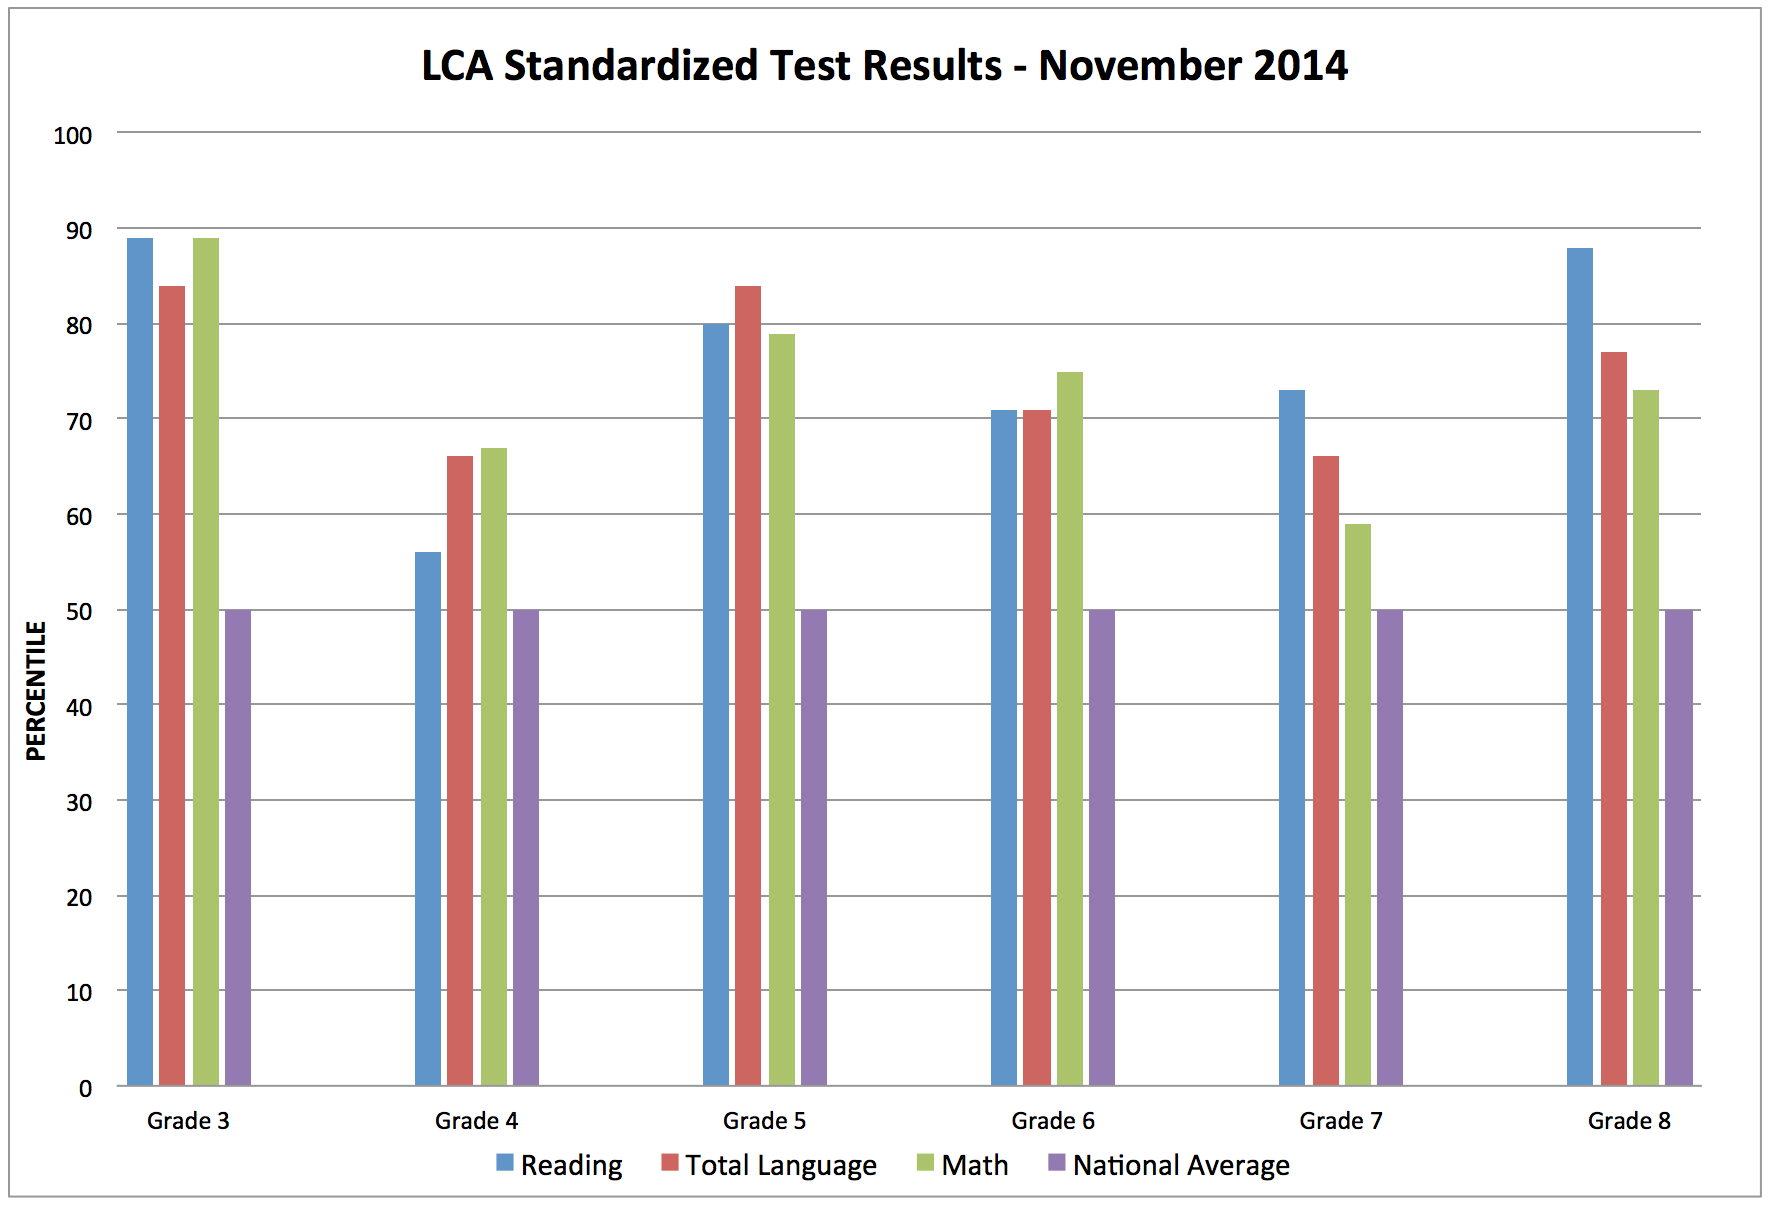 LCA vs. National Average